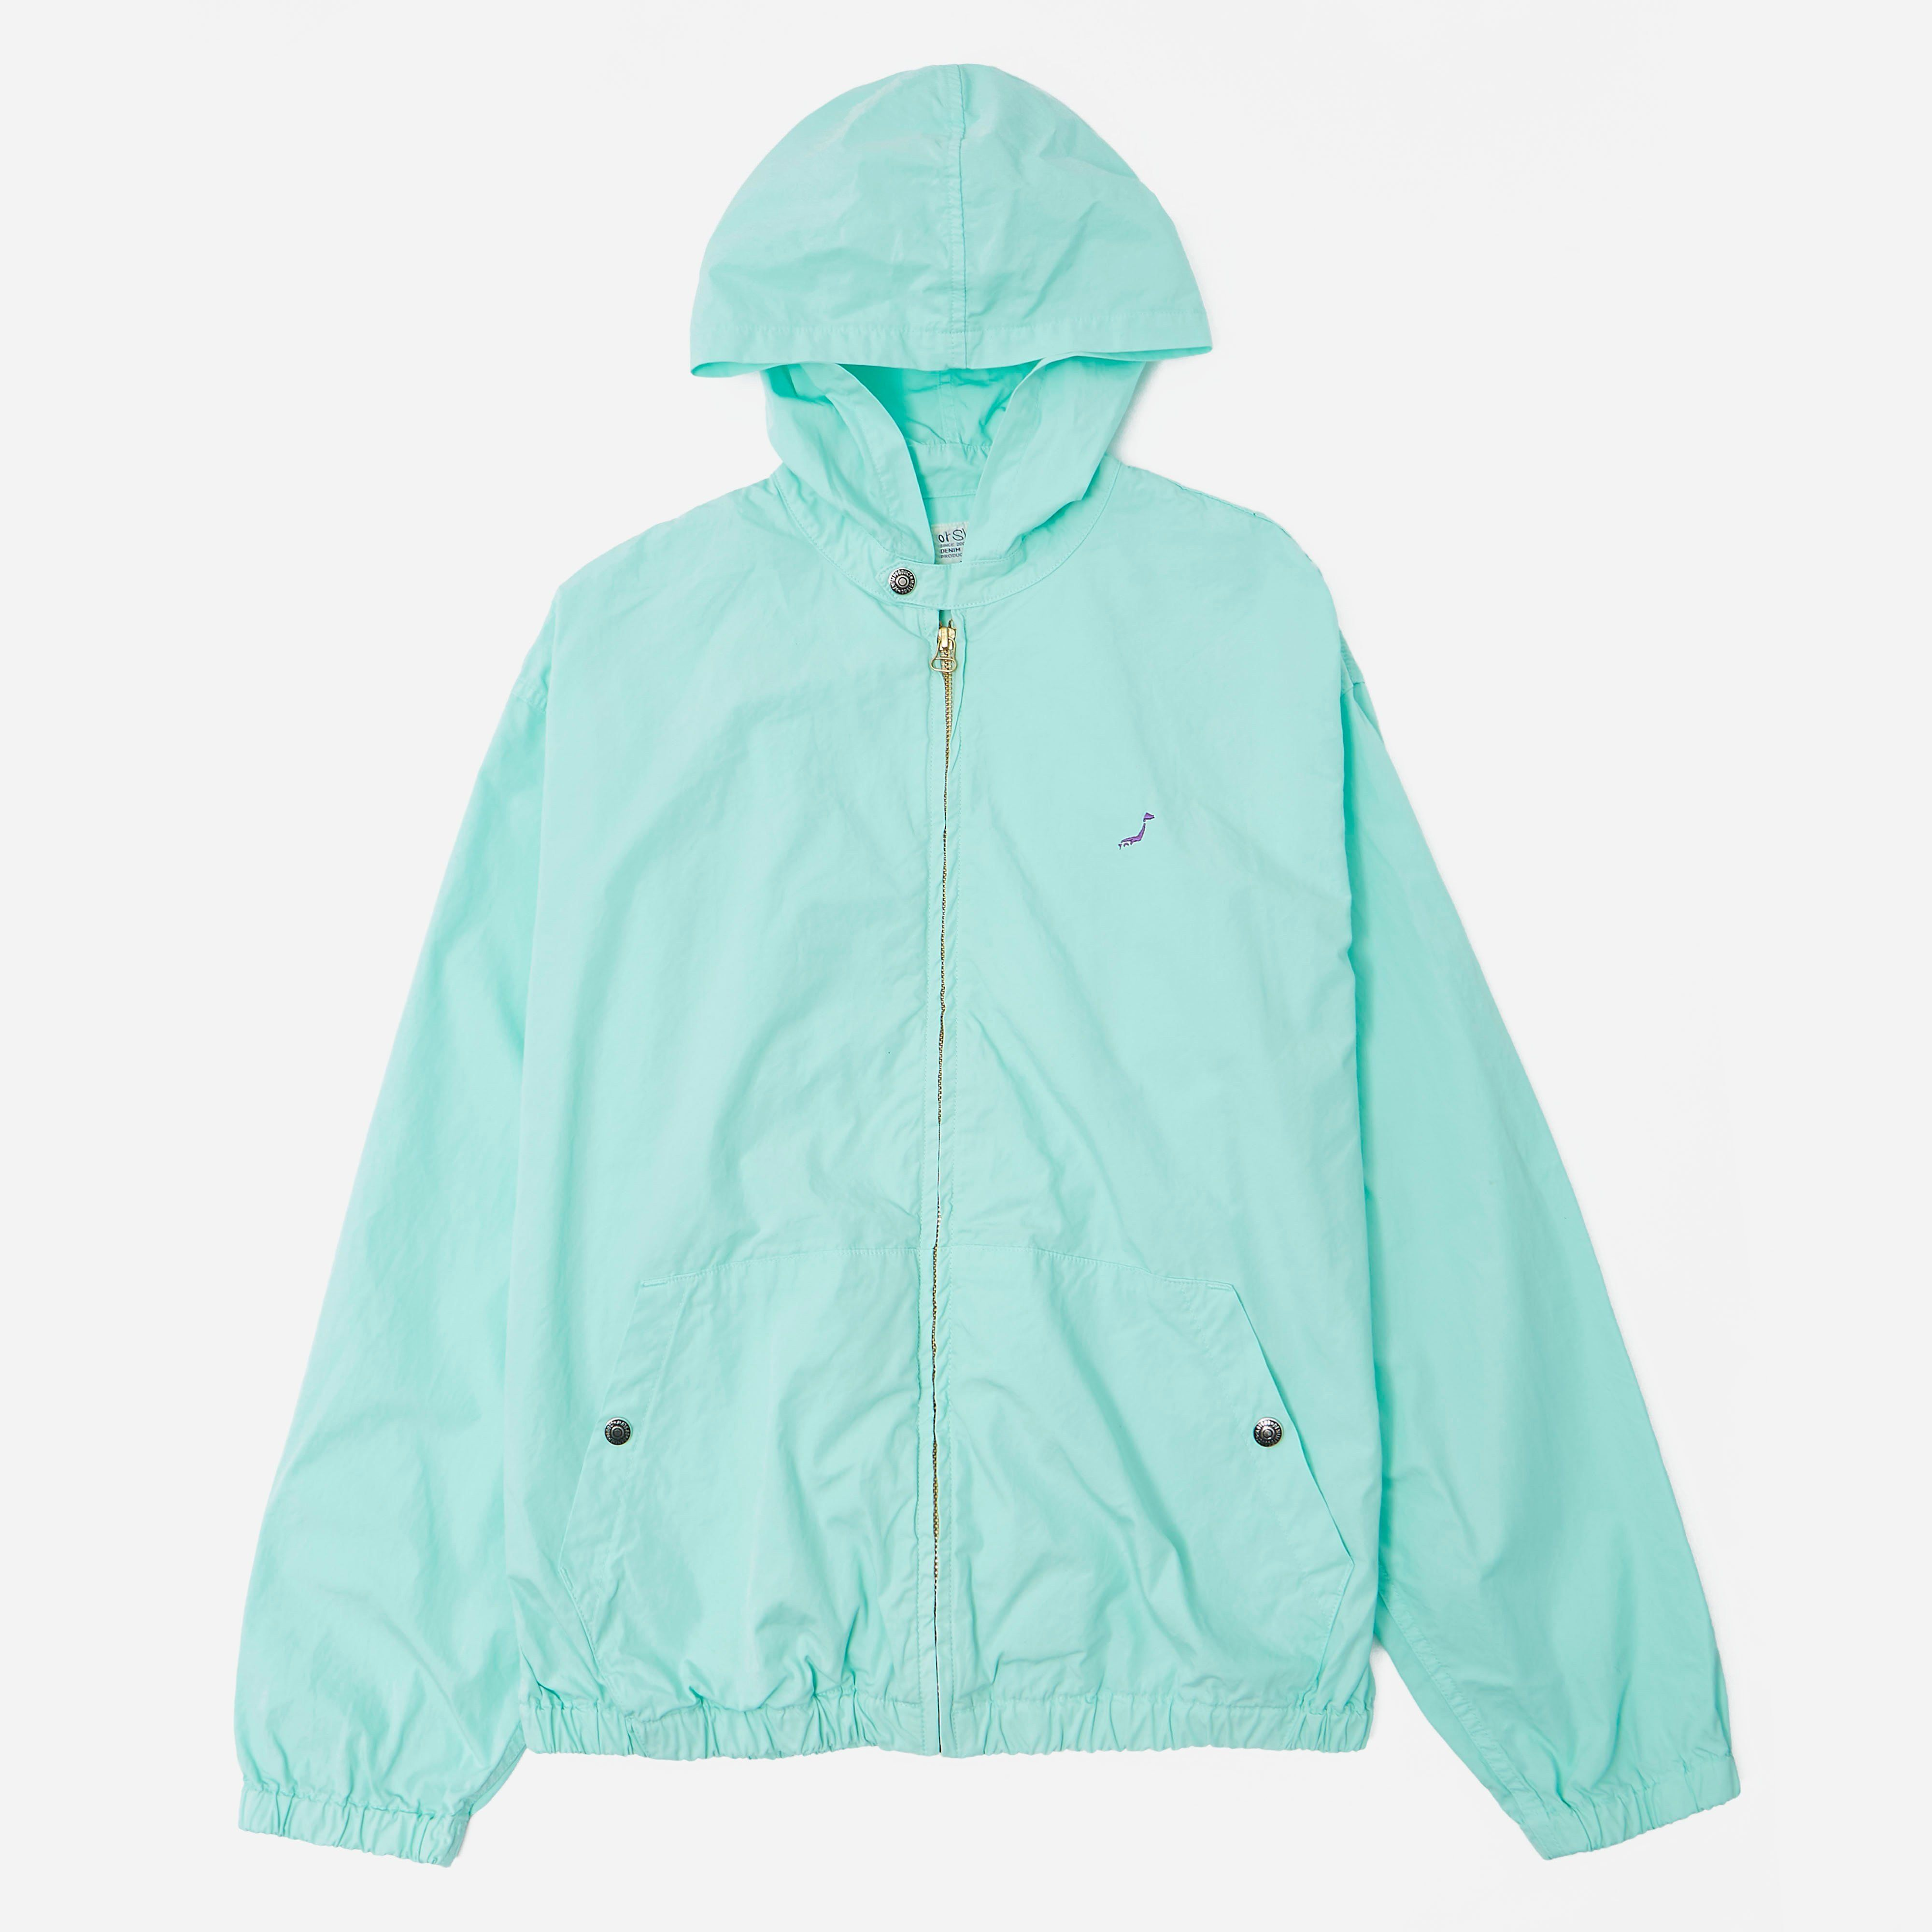 orSlow Hooded Blouson